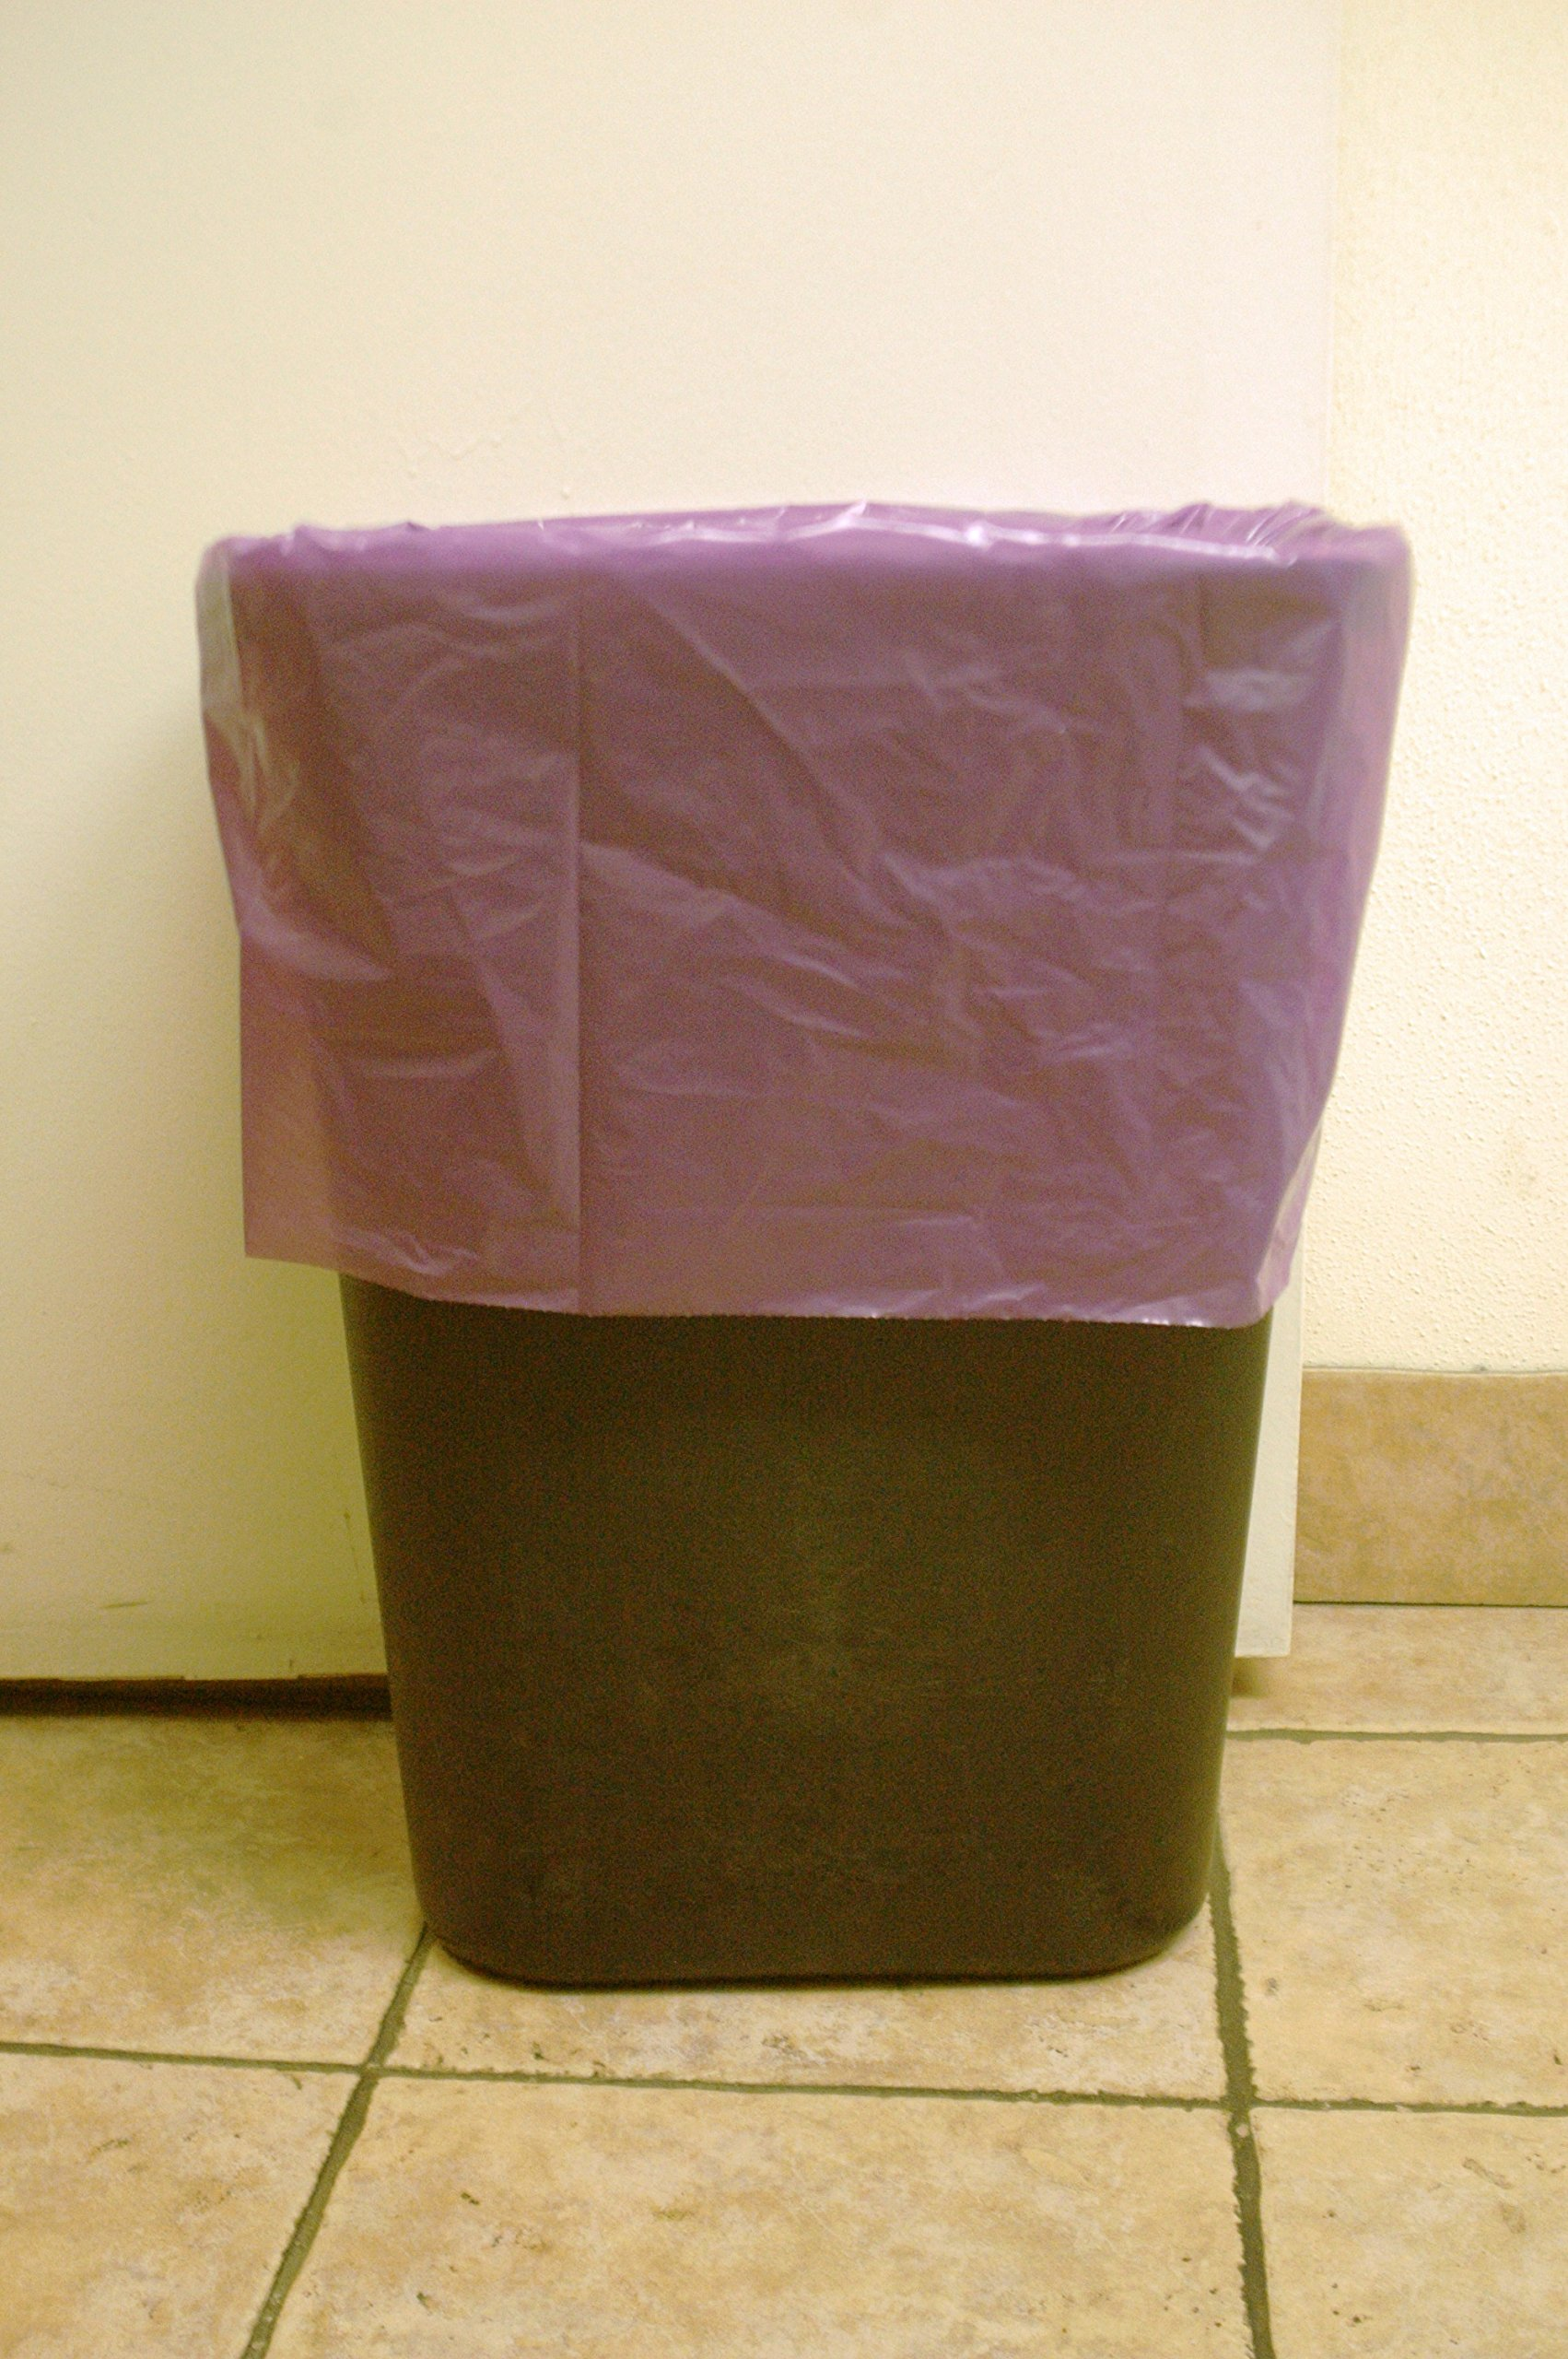 Extra Tall Kitchen Garbage Bags Purple 13 Gallon - 150/Case